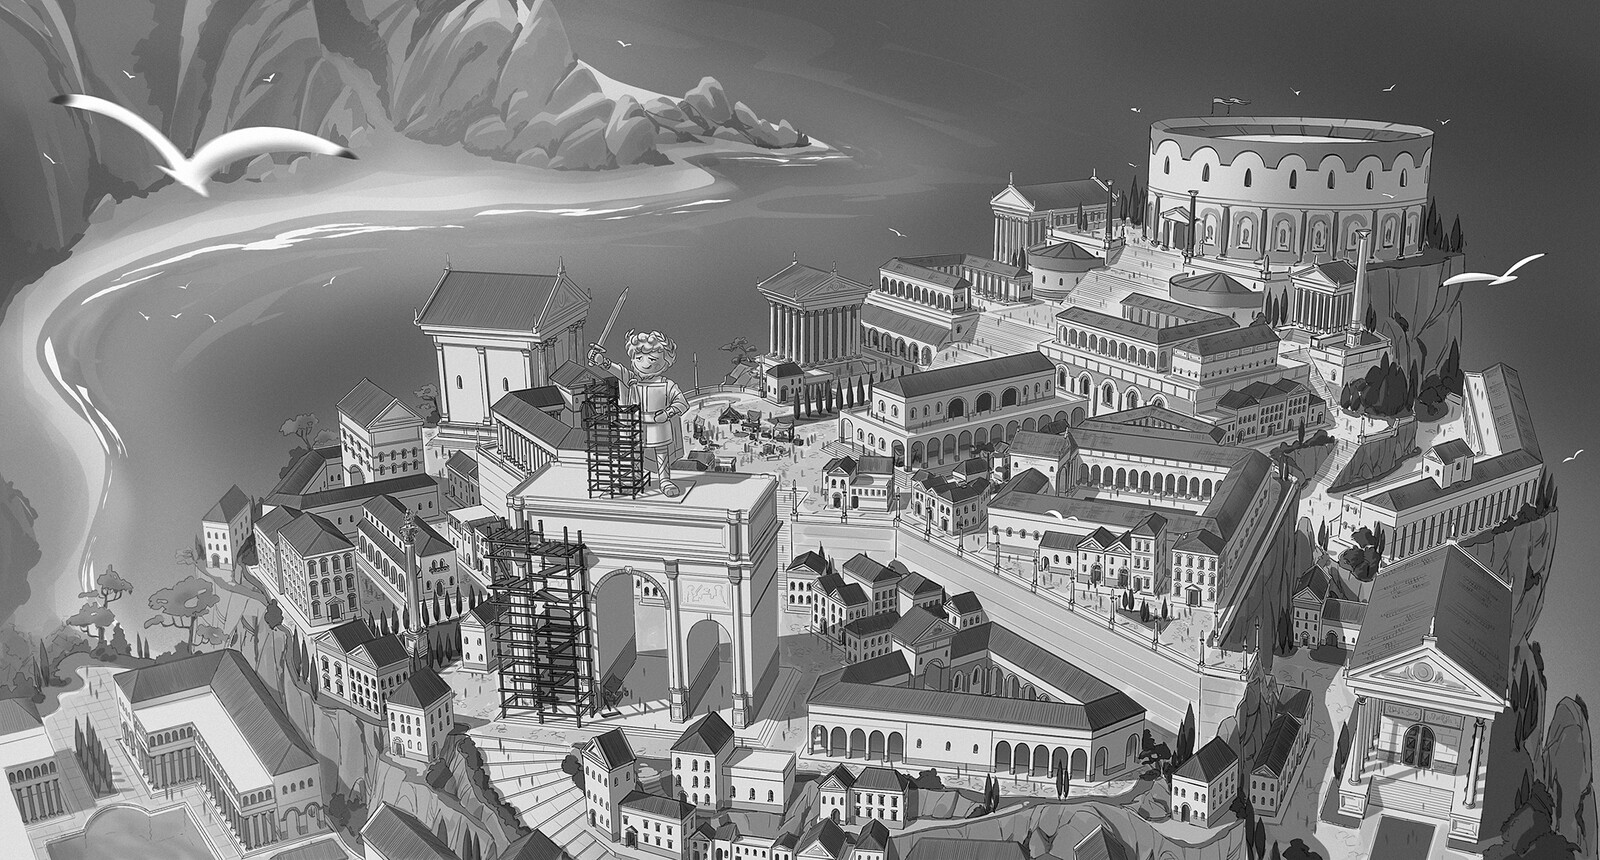 """Bird view concept of the city of Constantinopolis. This is an early stage version, before it was turned in a more """"defensive"""" town."""